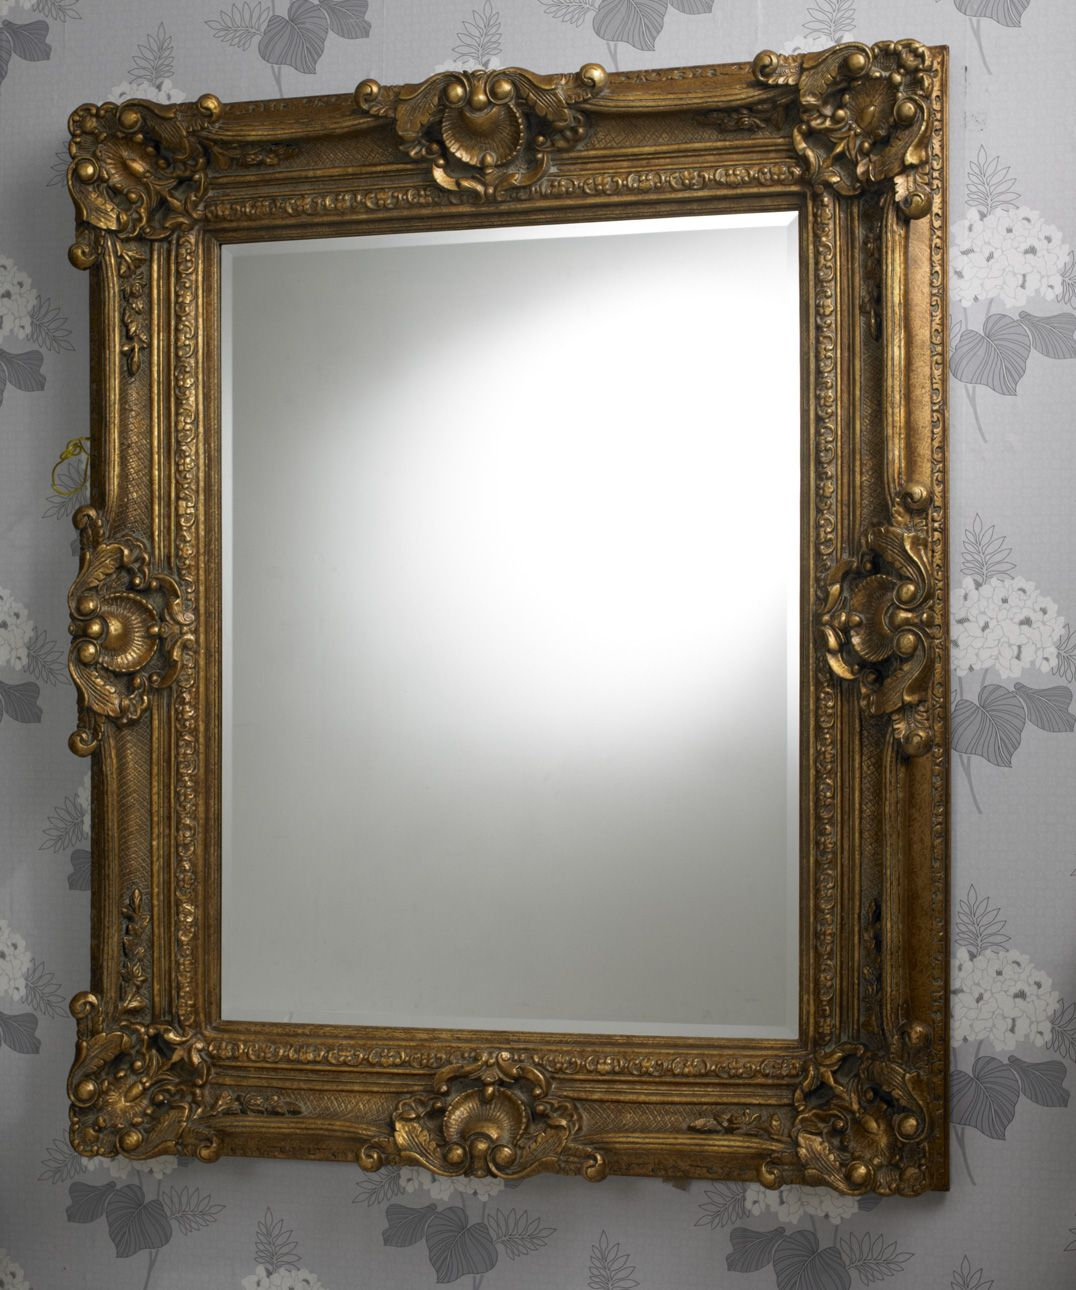 This is a handsome traditional large mirror with a classic rococo style decorative frame finished in gold; the mirror itself is made in high quality bevelled glass. Dimensions: 165cm x 135cm  http://www.totalmirrors.com/roccoco-mirrors/216-gold-rococo-mirror-165x135cm.html